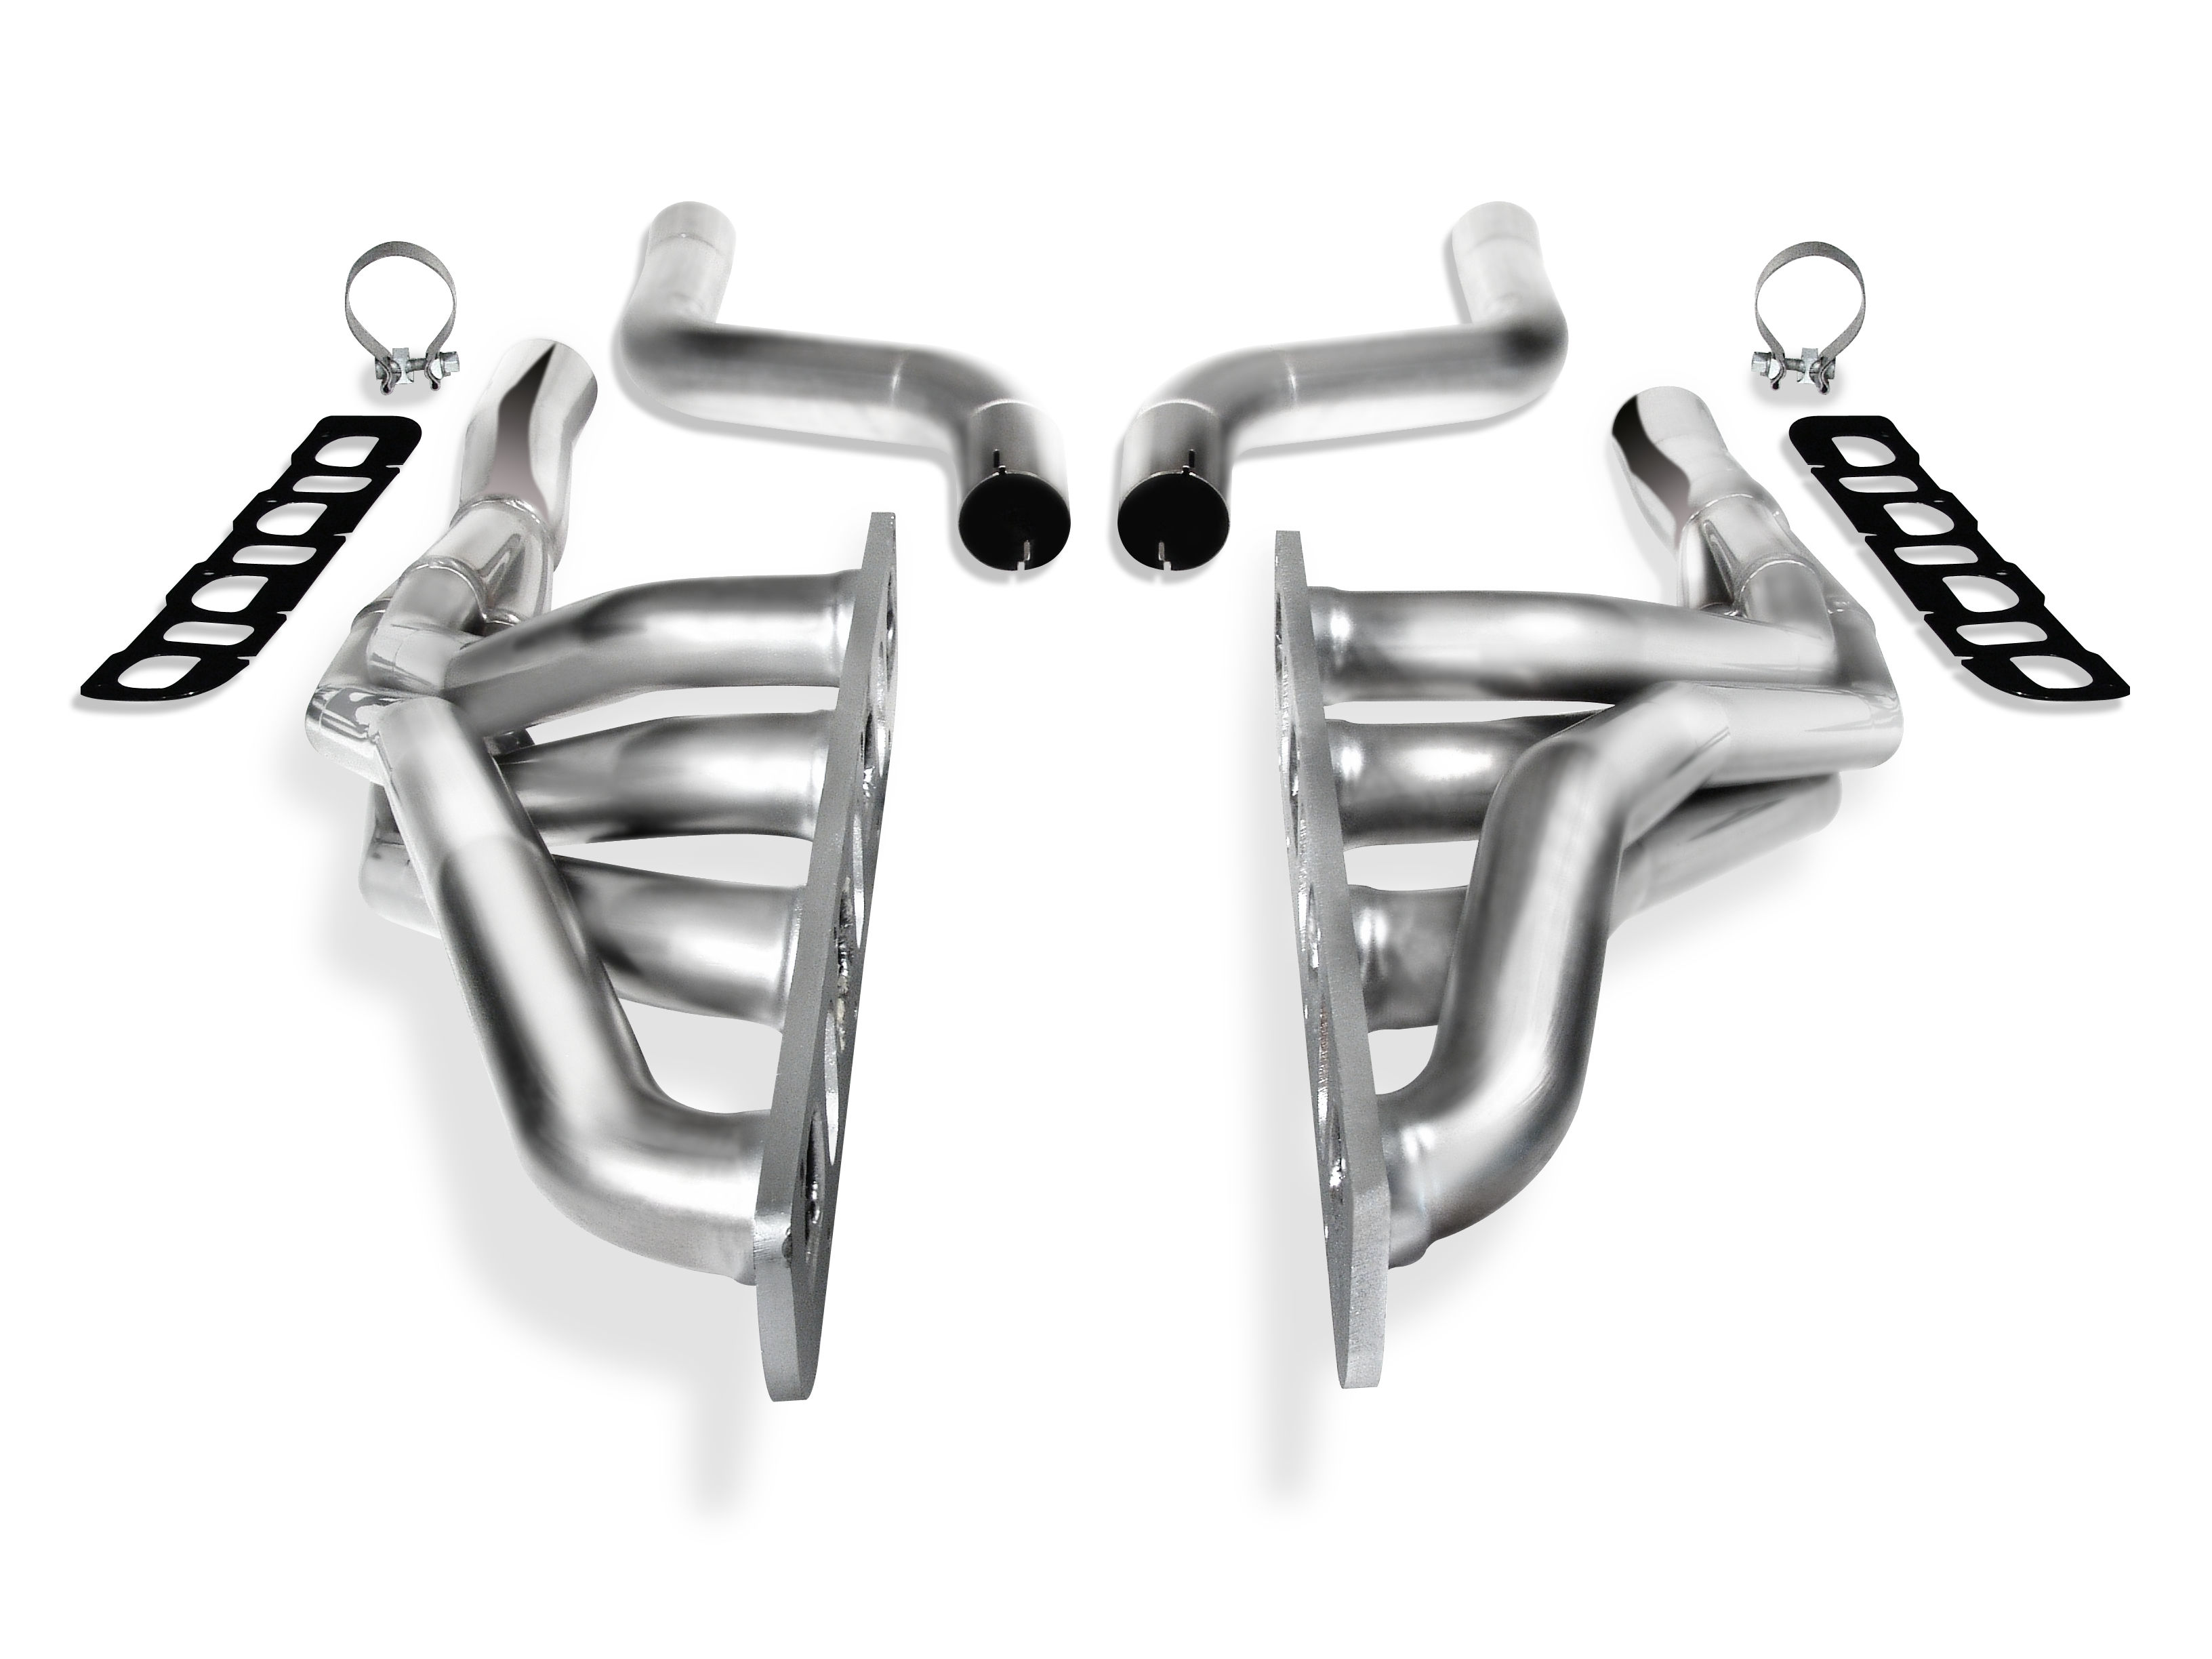 Dodge Charger SRT-8 6.1l6.4l V8 2005-2010 Borla Long Tube Exhaust Headers (offroad Only)